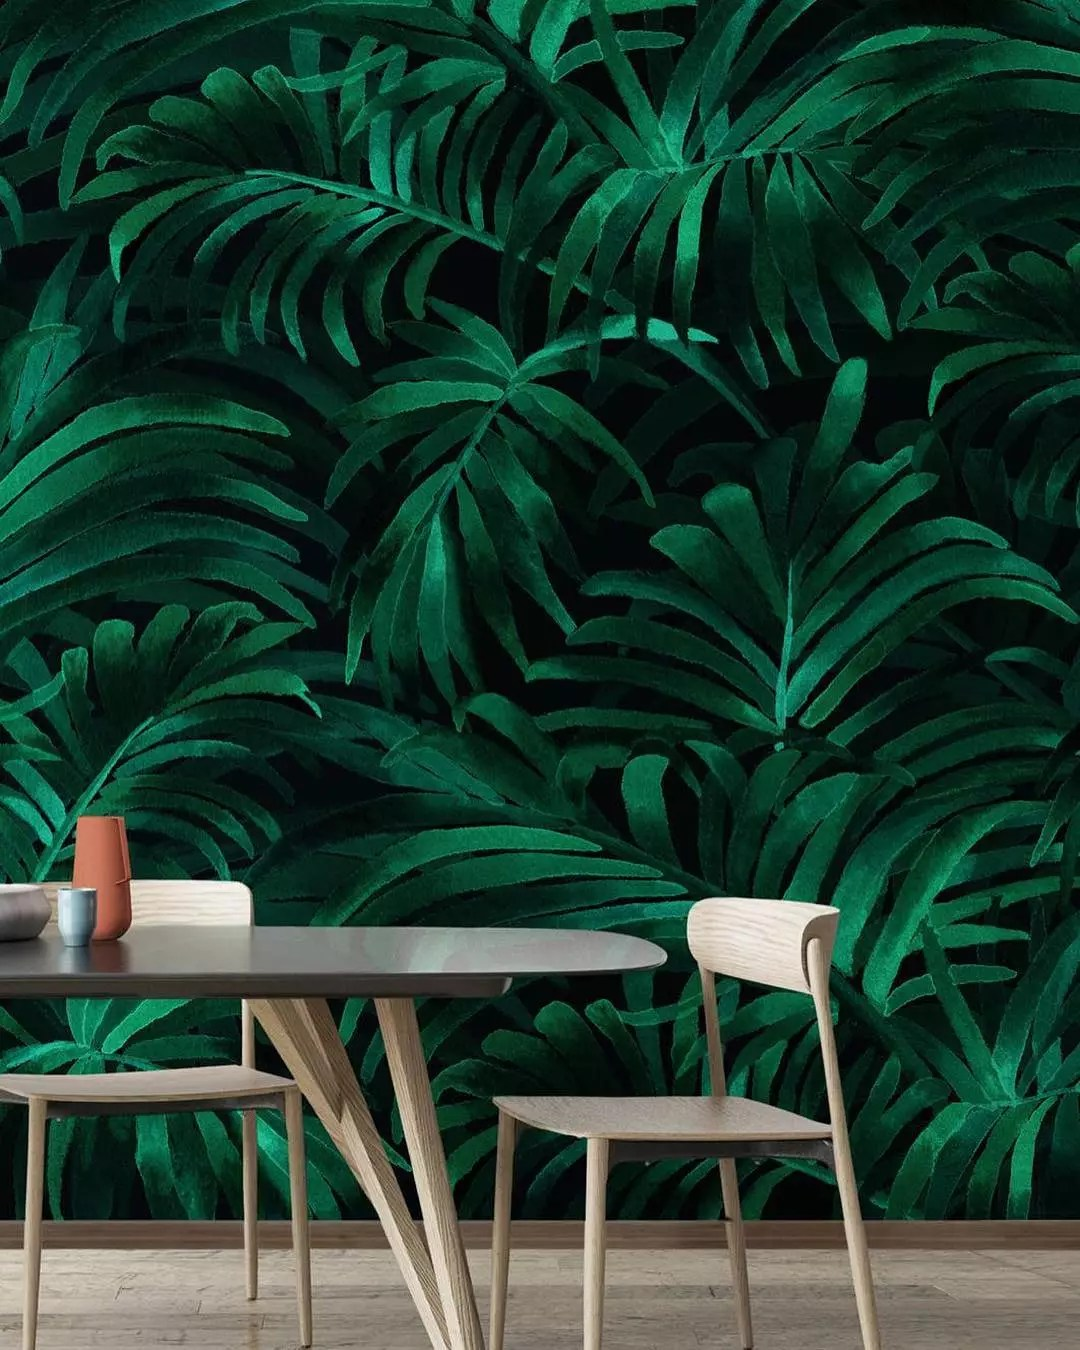 Palm plethora wallpaper. Photo by Instagram user @dalwindesigns